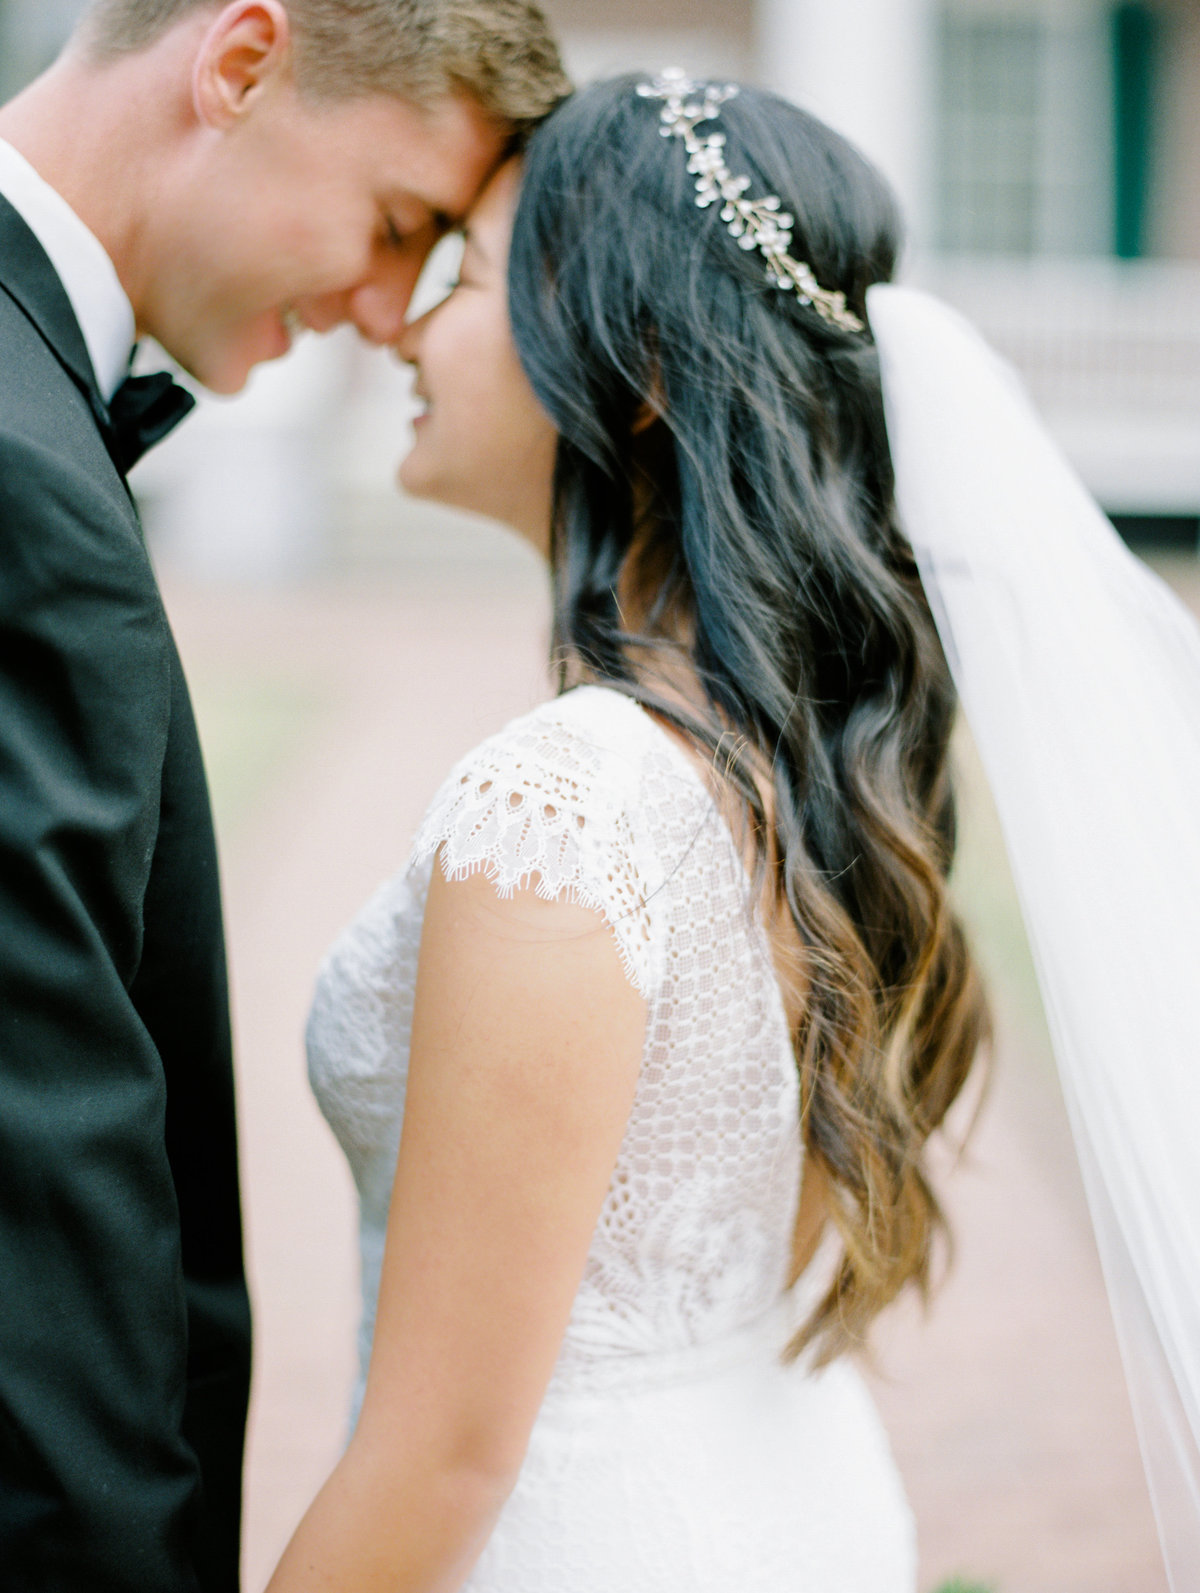 annmarie+taylor-wedding-371